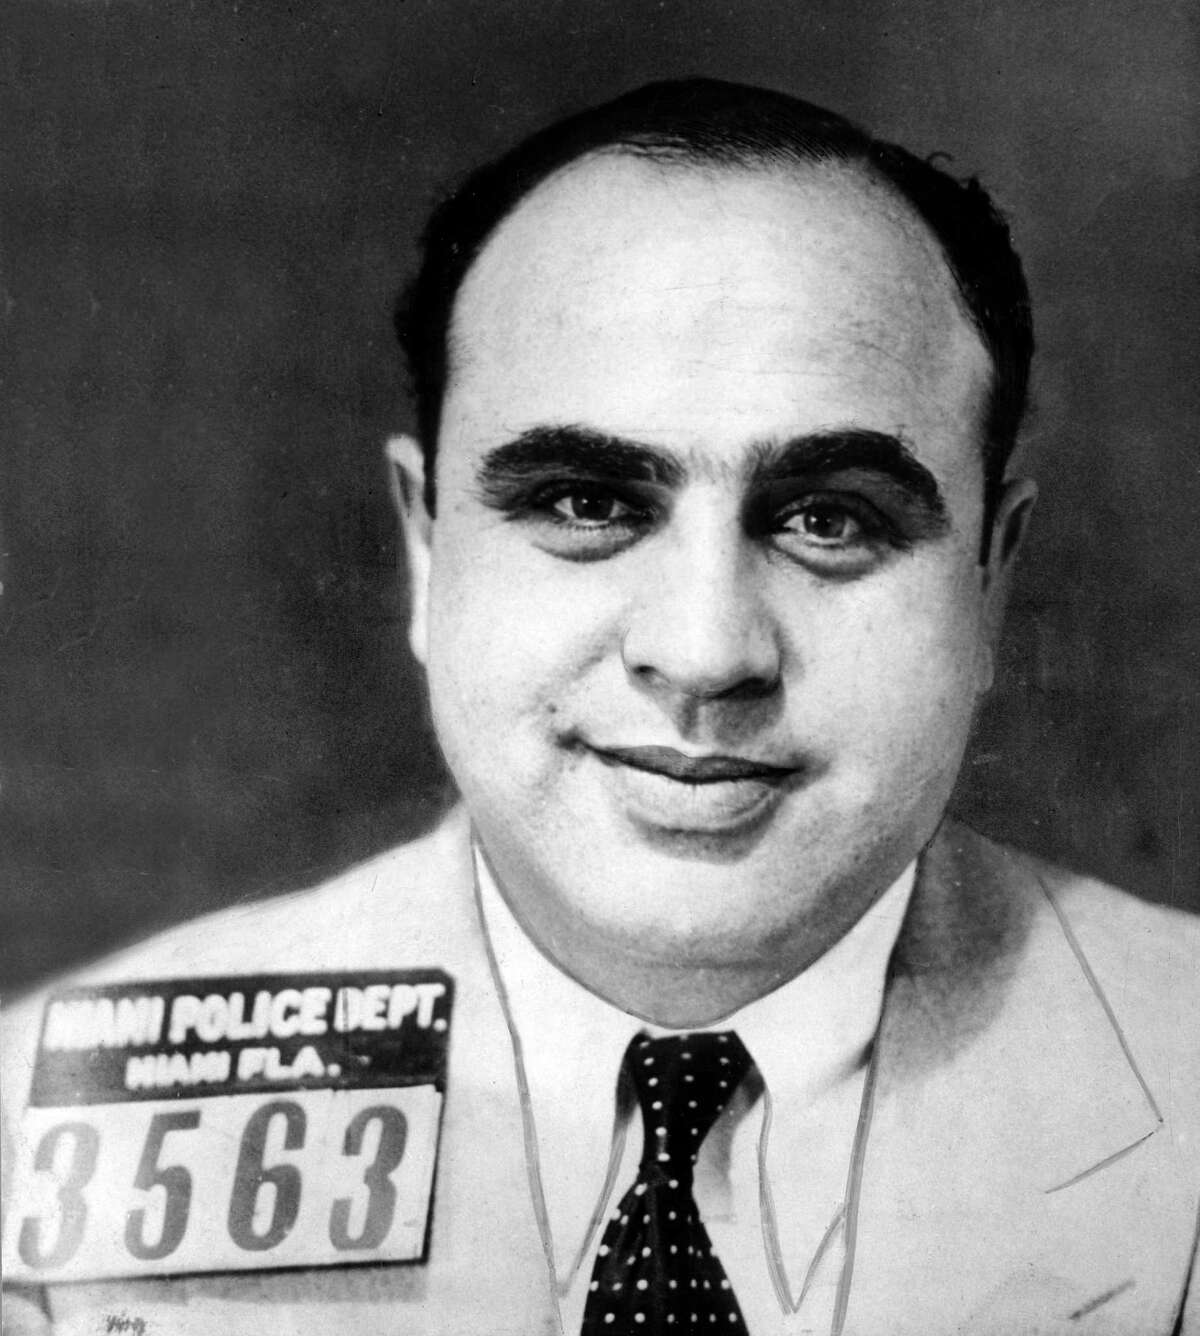 Al Capone, one of the most prominent mobsters of the 1920s was eventually convicted not of murder and racketeering, but for failure to pay income tax, he received a 11 year sentence.